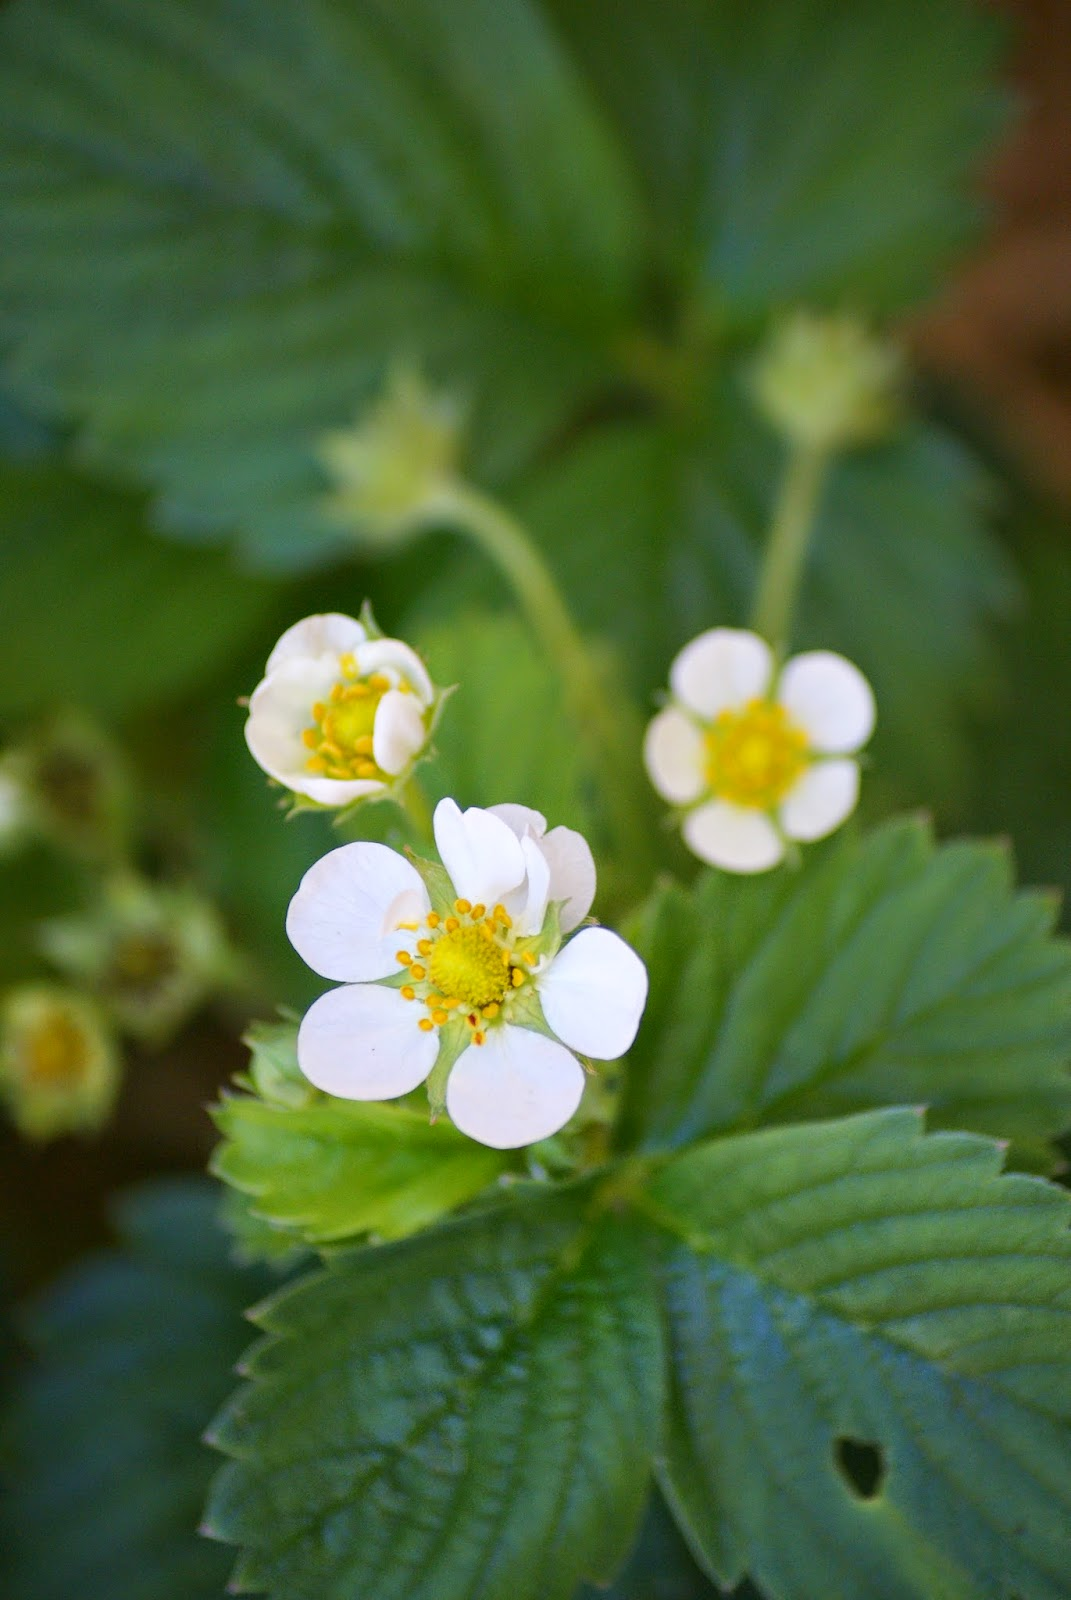 Strawberry Flowers Growing in the Garden